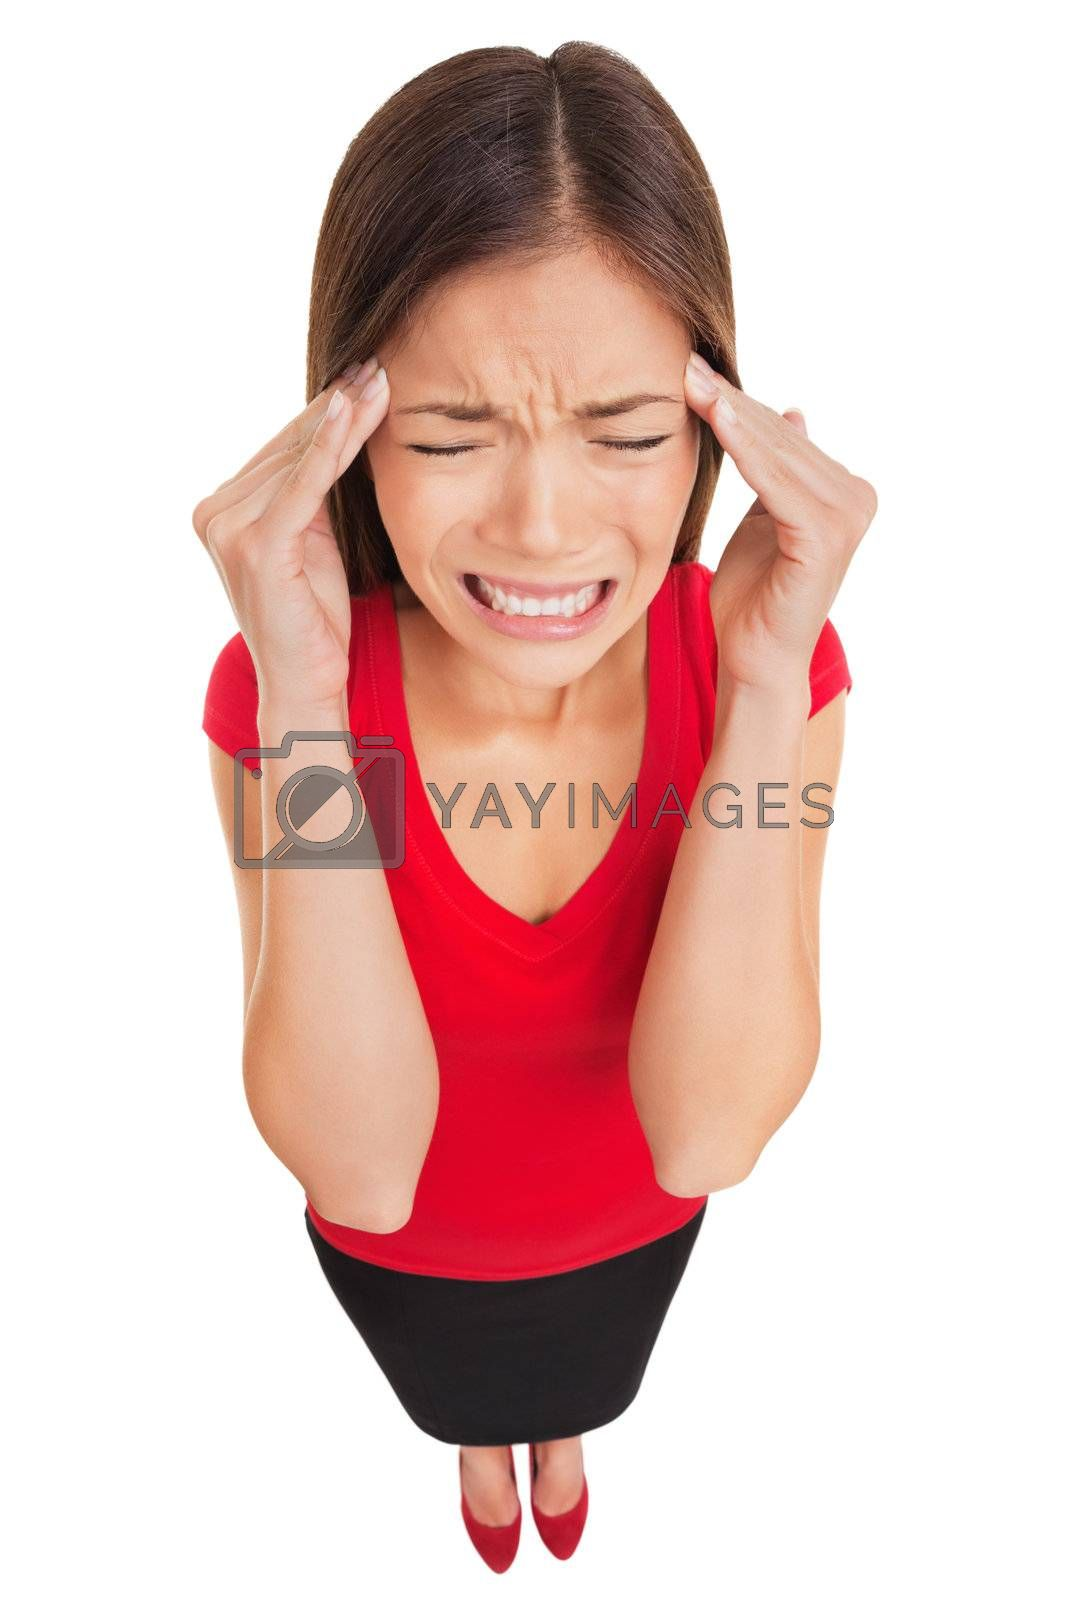 Woman suffering from a migraine headache rubbing her temples with her fingers and grimacing in pain, high angle full length studio portrait isolated on white background. Asian Caucasian female model.